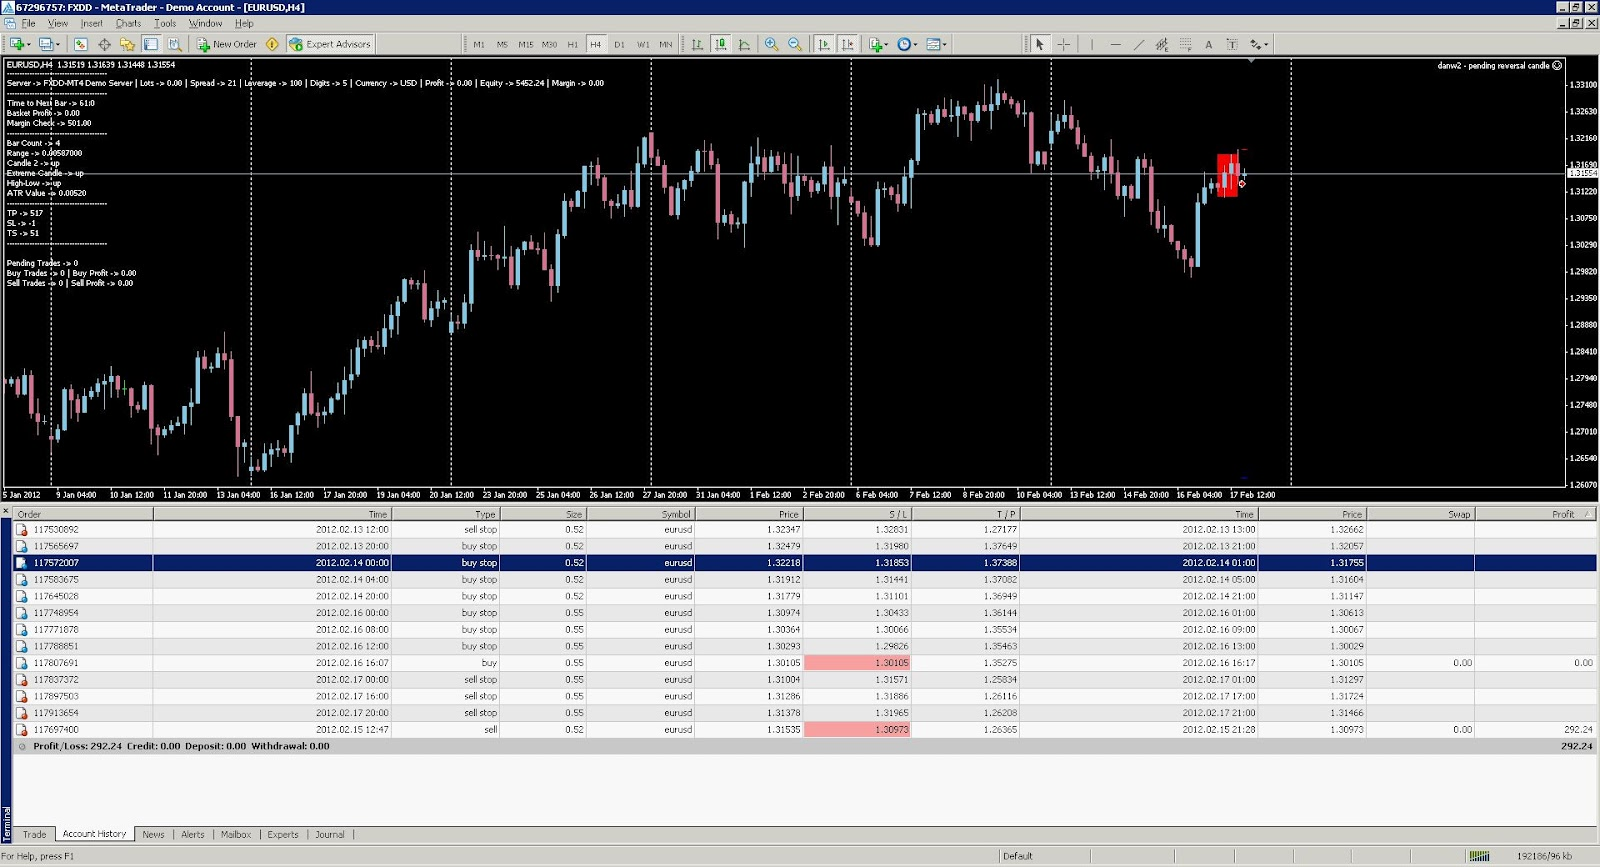 Smallest lot size forex